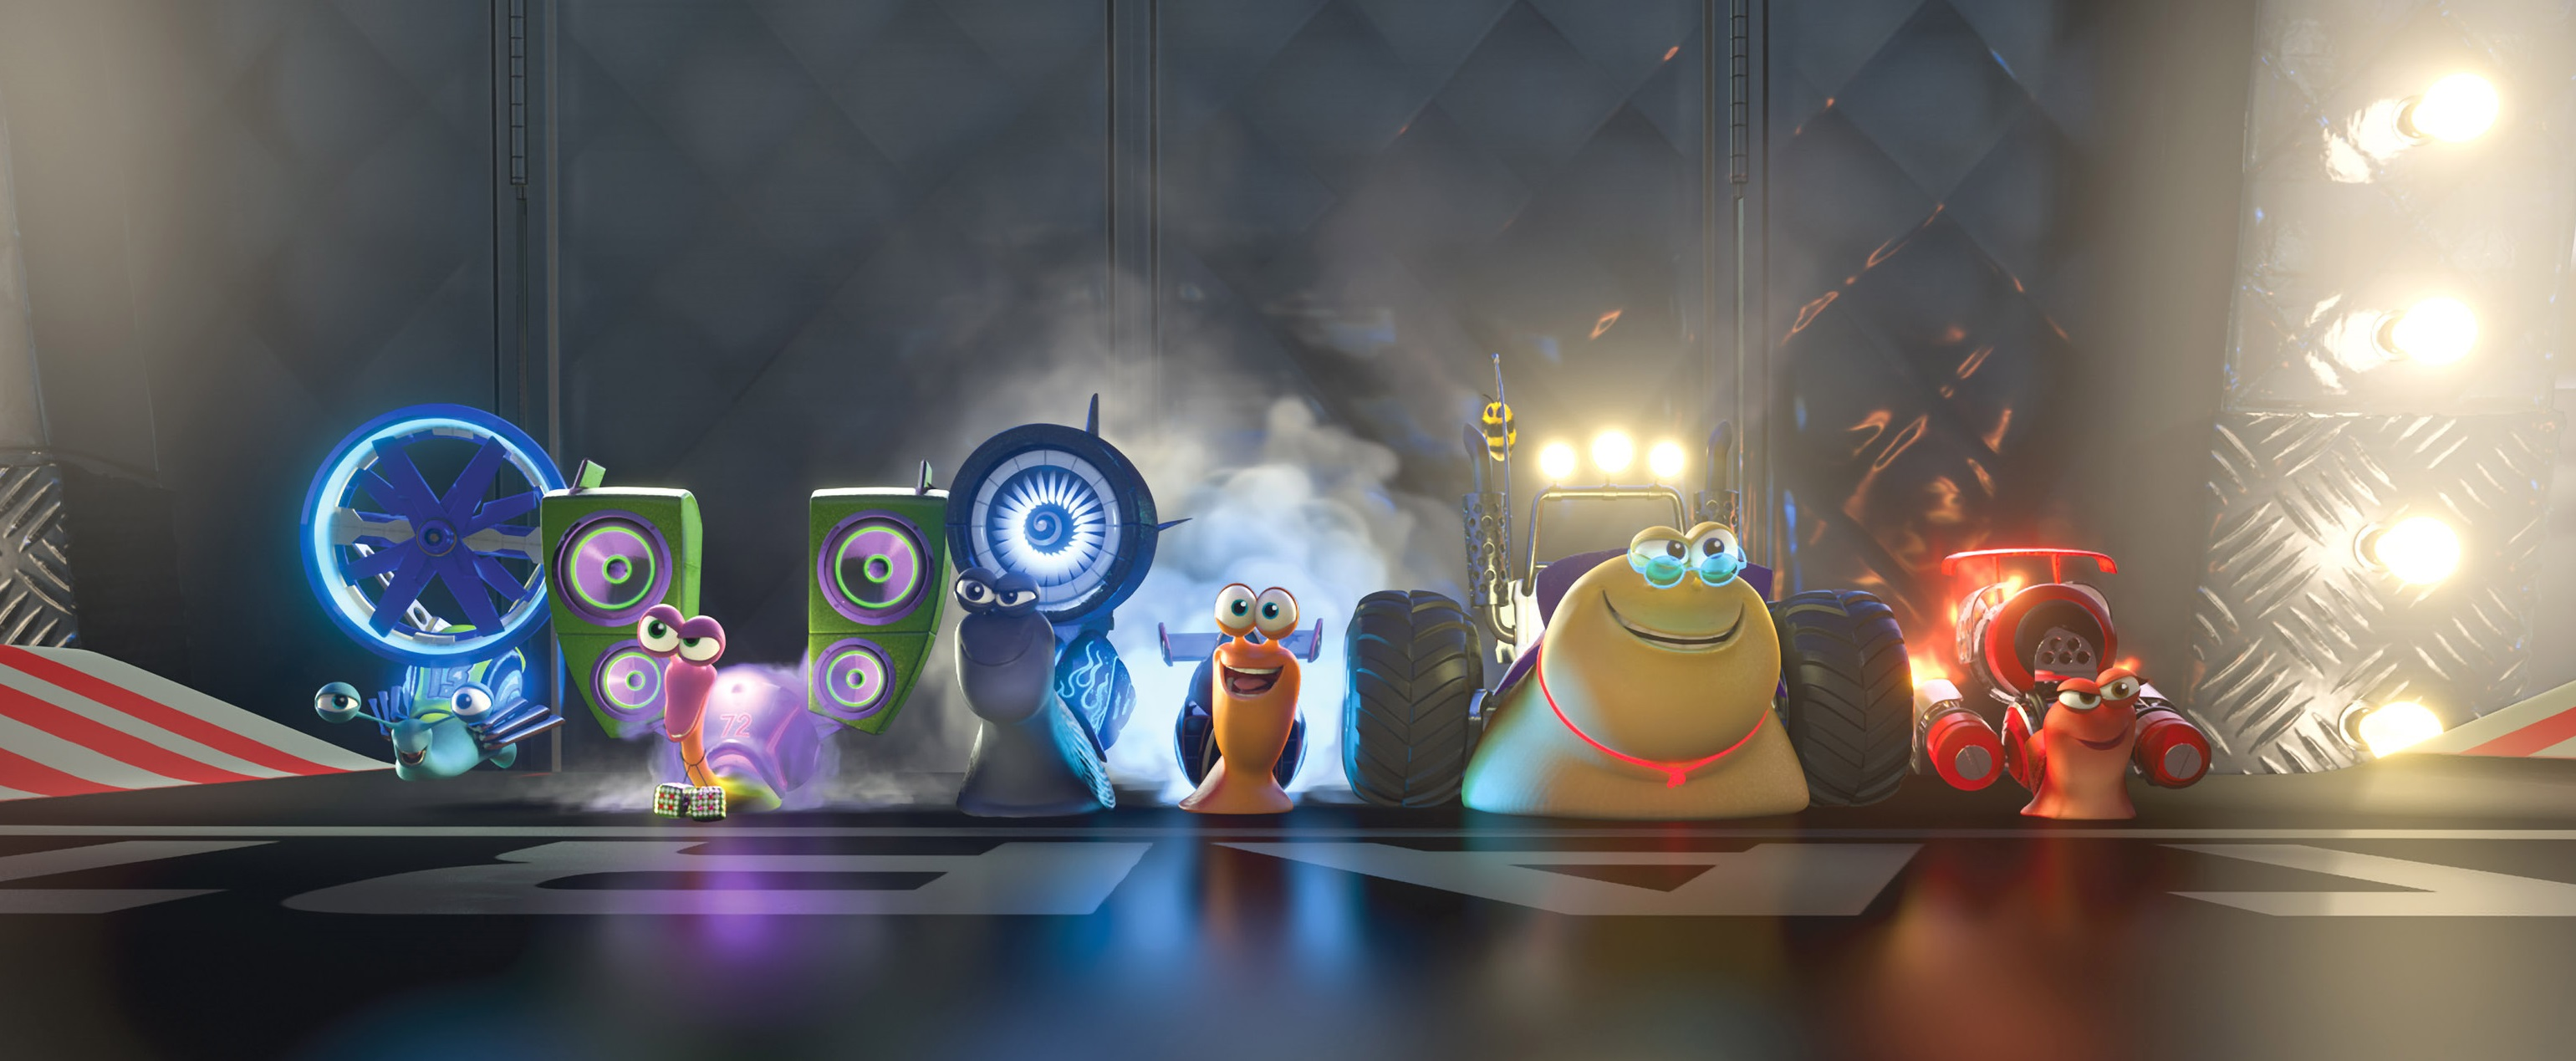 'Minions': Making Millions in Movie Multiplexes